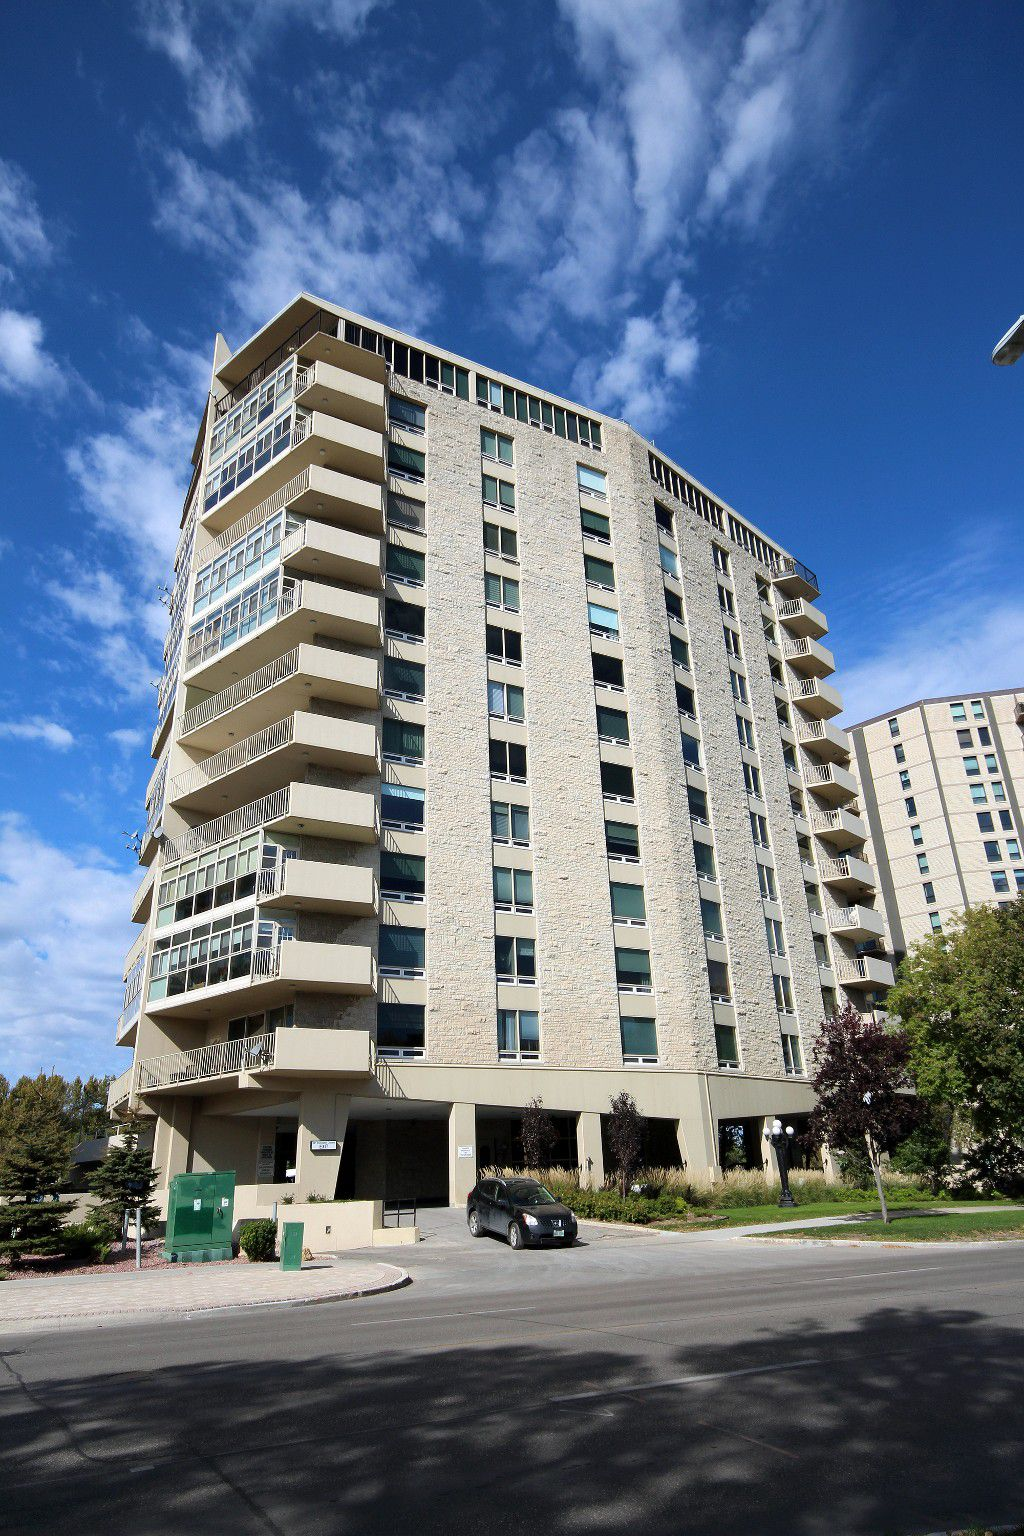 Main Photo: 2D - 221 Wellington Crescent in Winnipeg: Osborne Village Apartment for sale (1B)  : MLS®# 1704947